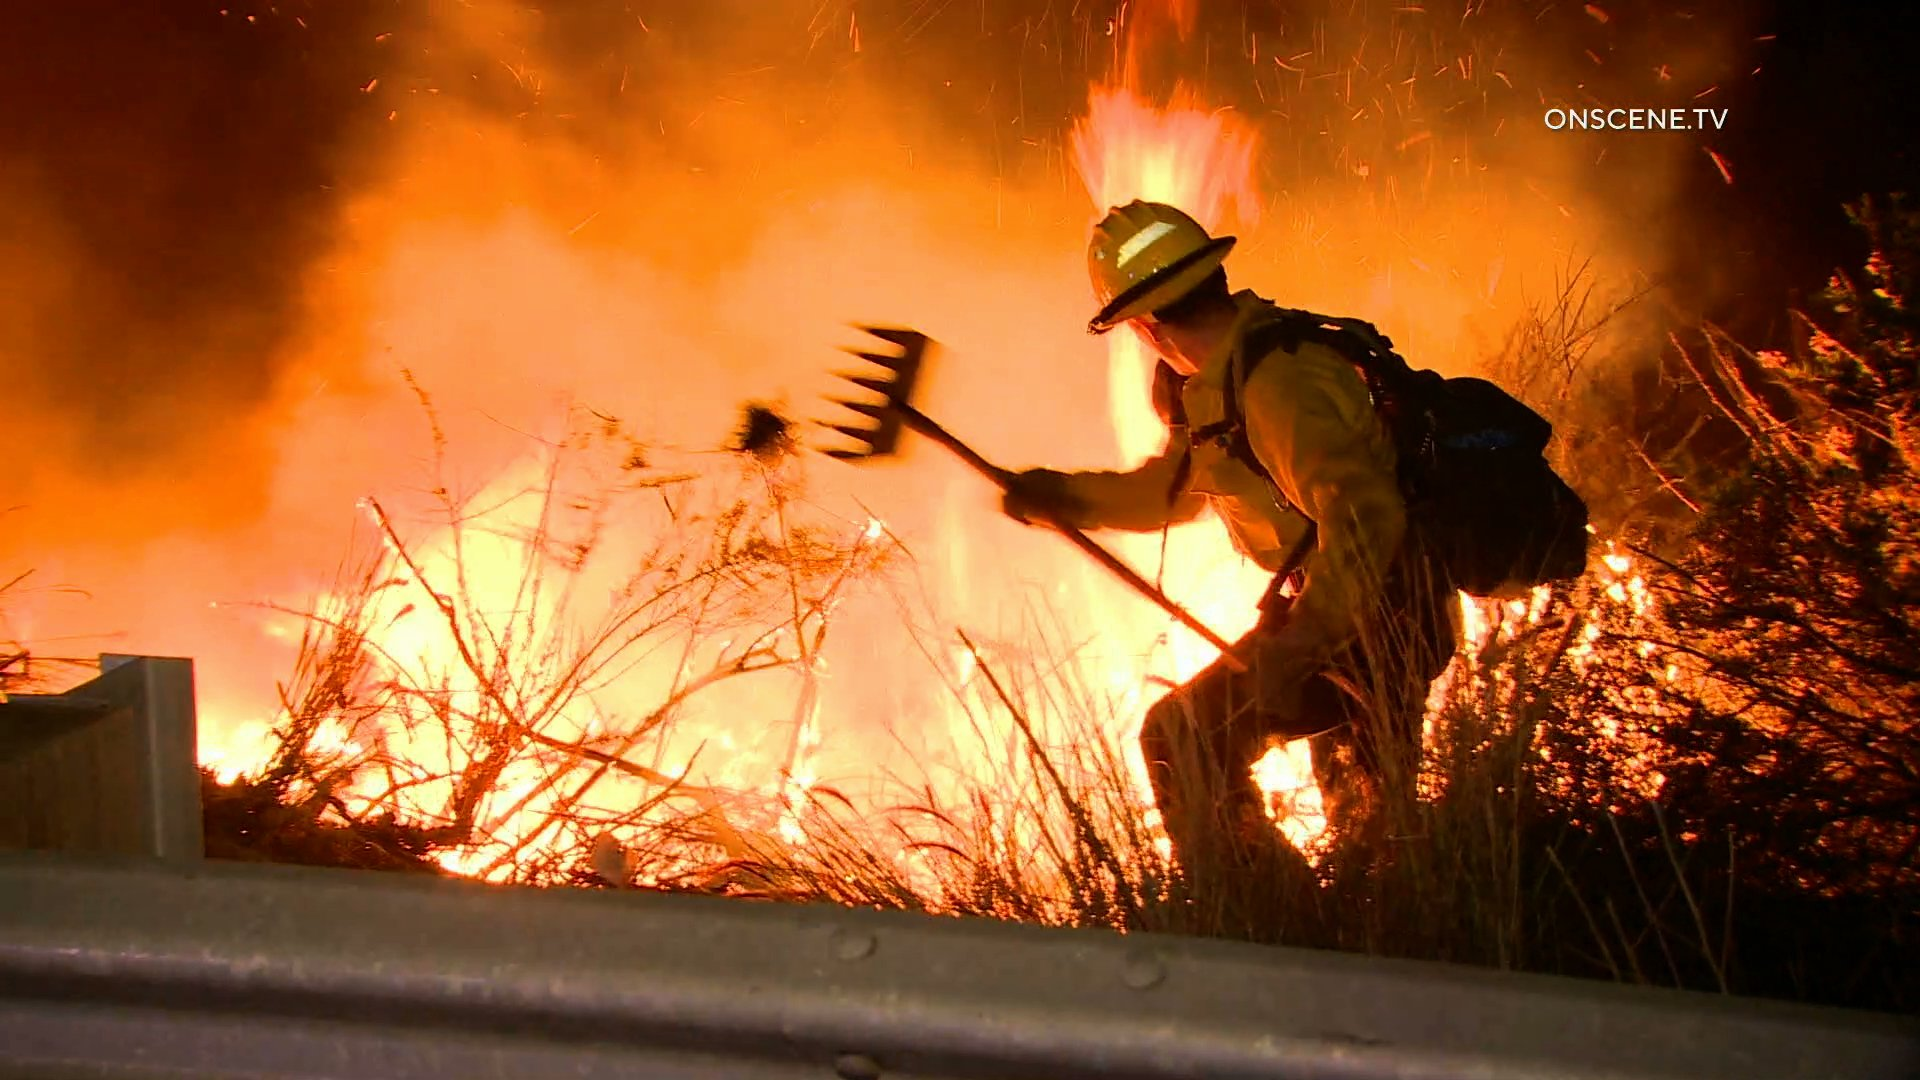 Crews work to extinguish a fire burning along the 5 Freeway in the San Clemente area on Jan. 29, 2020. (Credit: OnScene.TV)